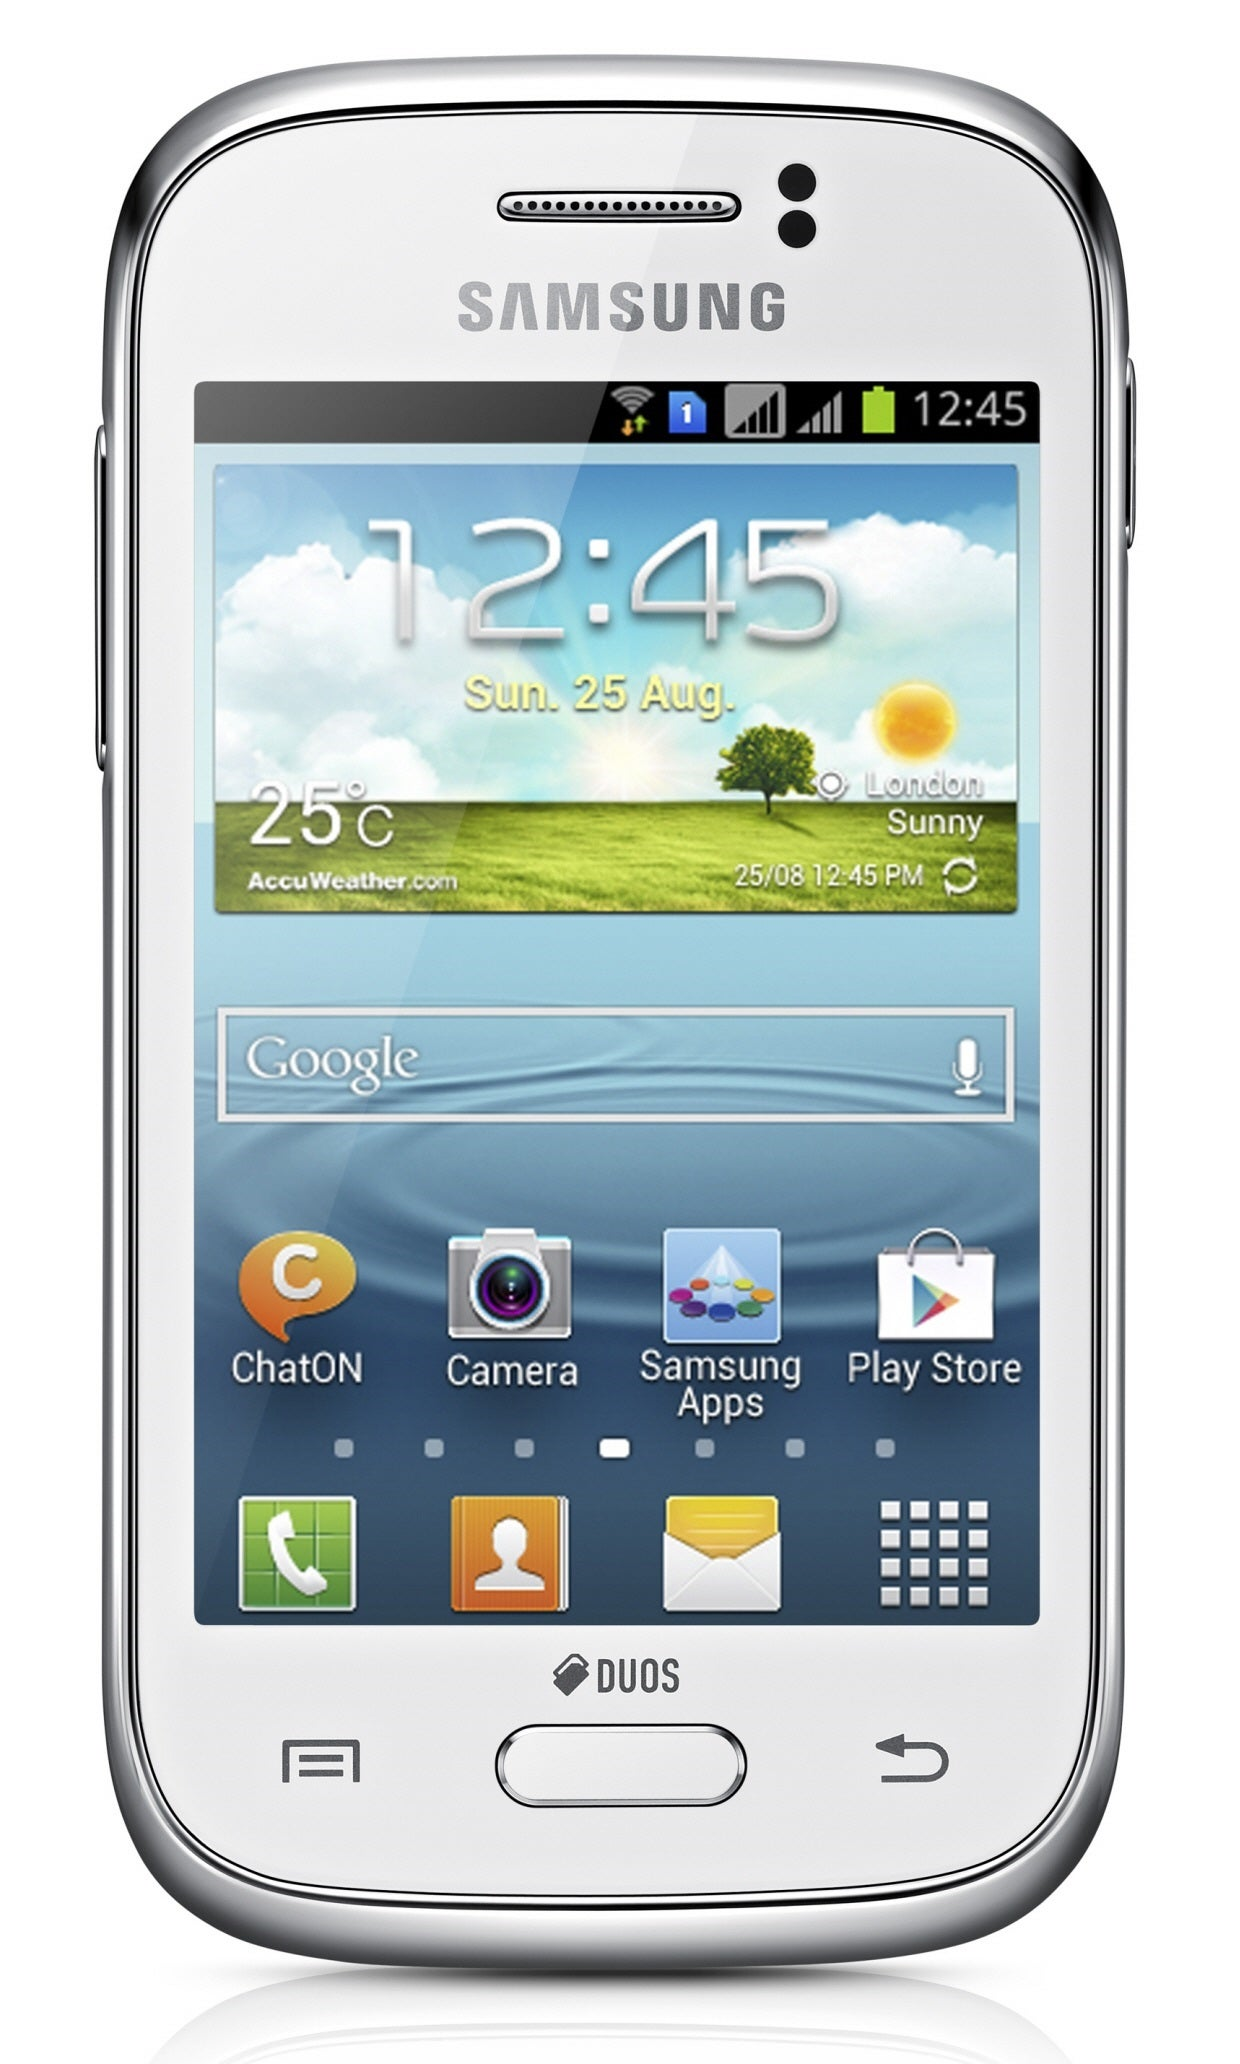 Samsung Galaxy Young S6310 GSM Unlocked Android Phone - White